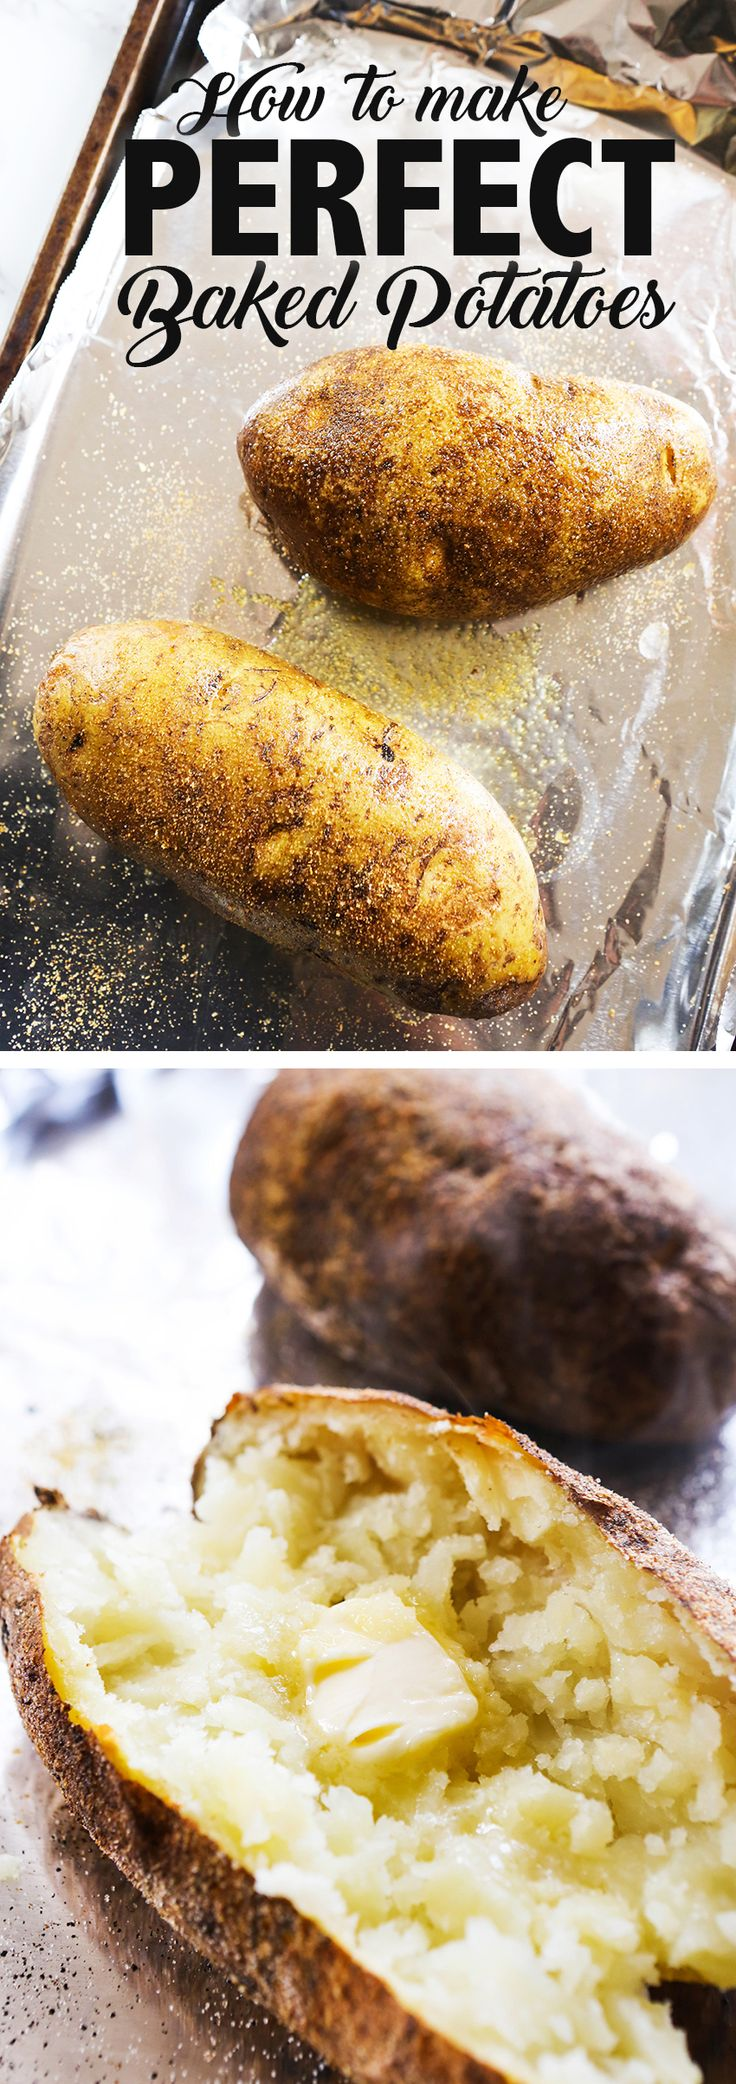 How to Make Perfect Baked Potatoes | Make perfect baked potatoes in your oven with NO FUSS. And a secret ingredient! #bakedpotatoes #potatoes